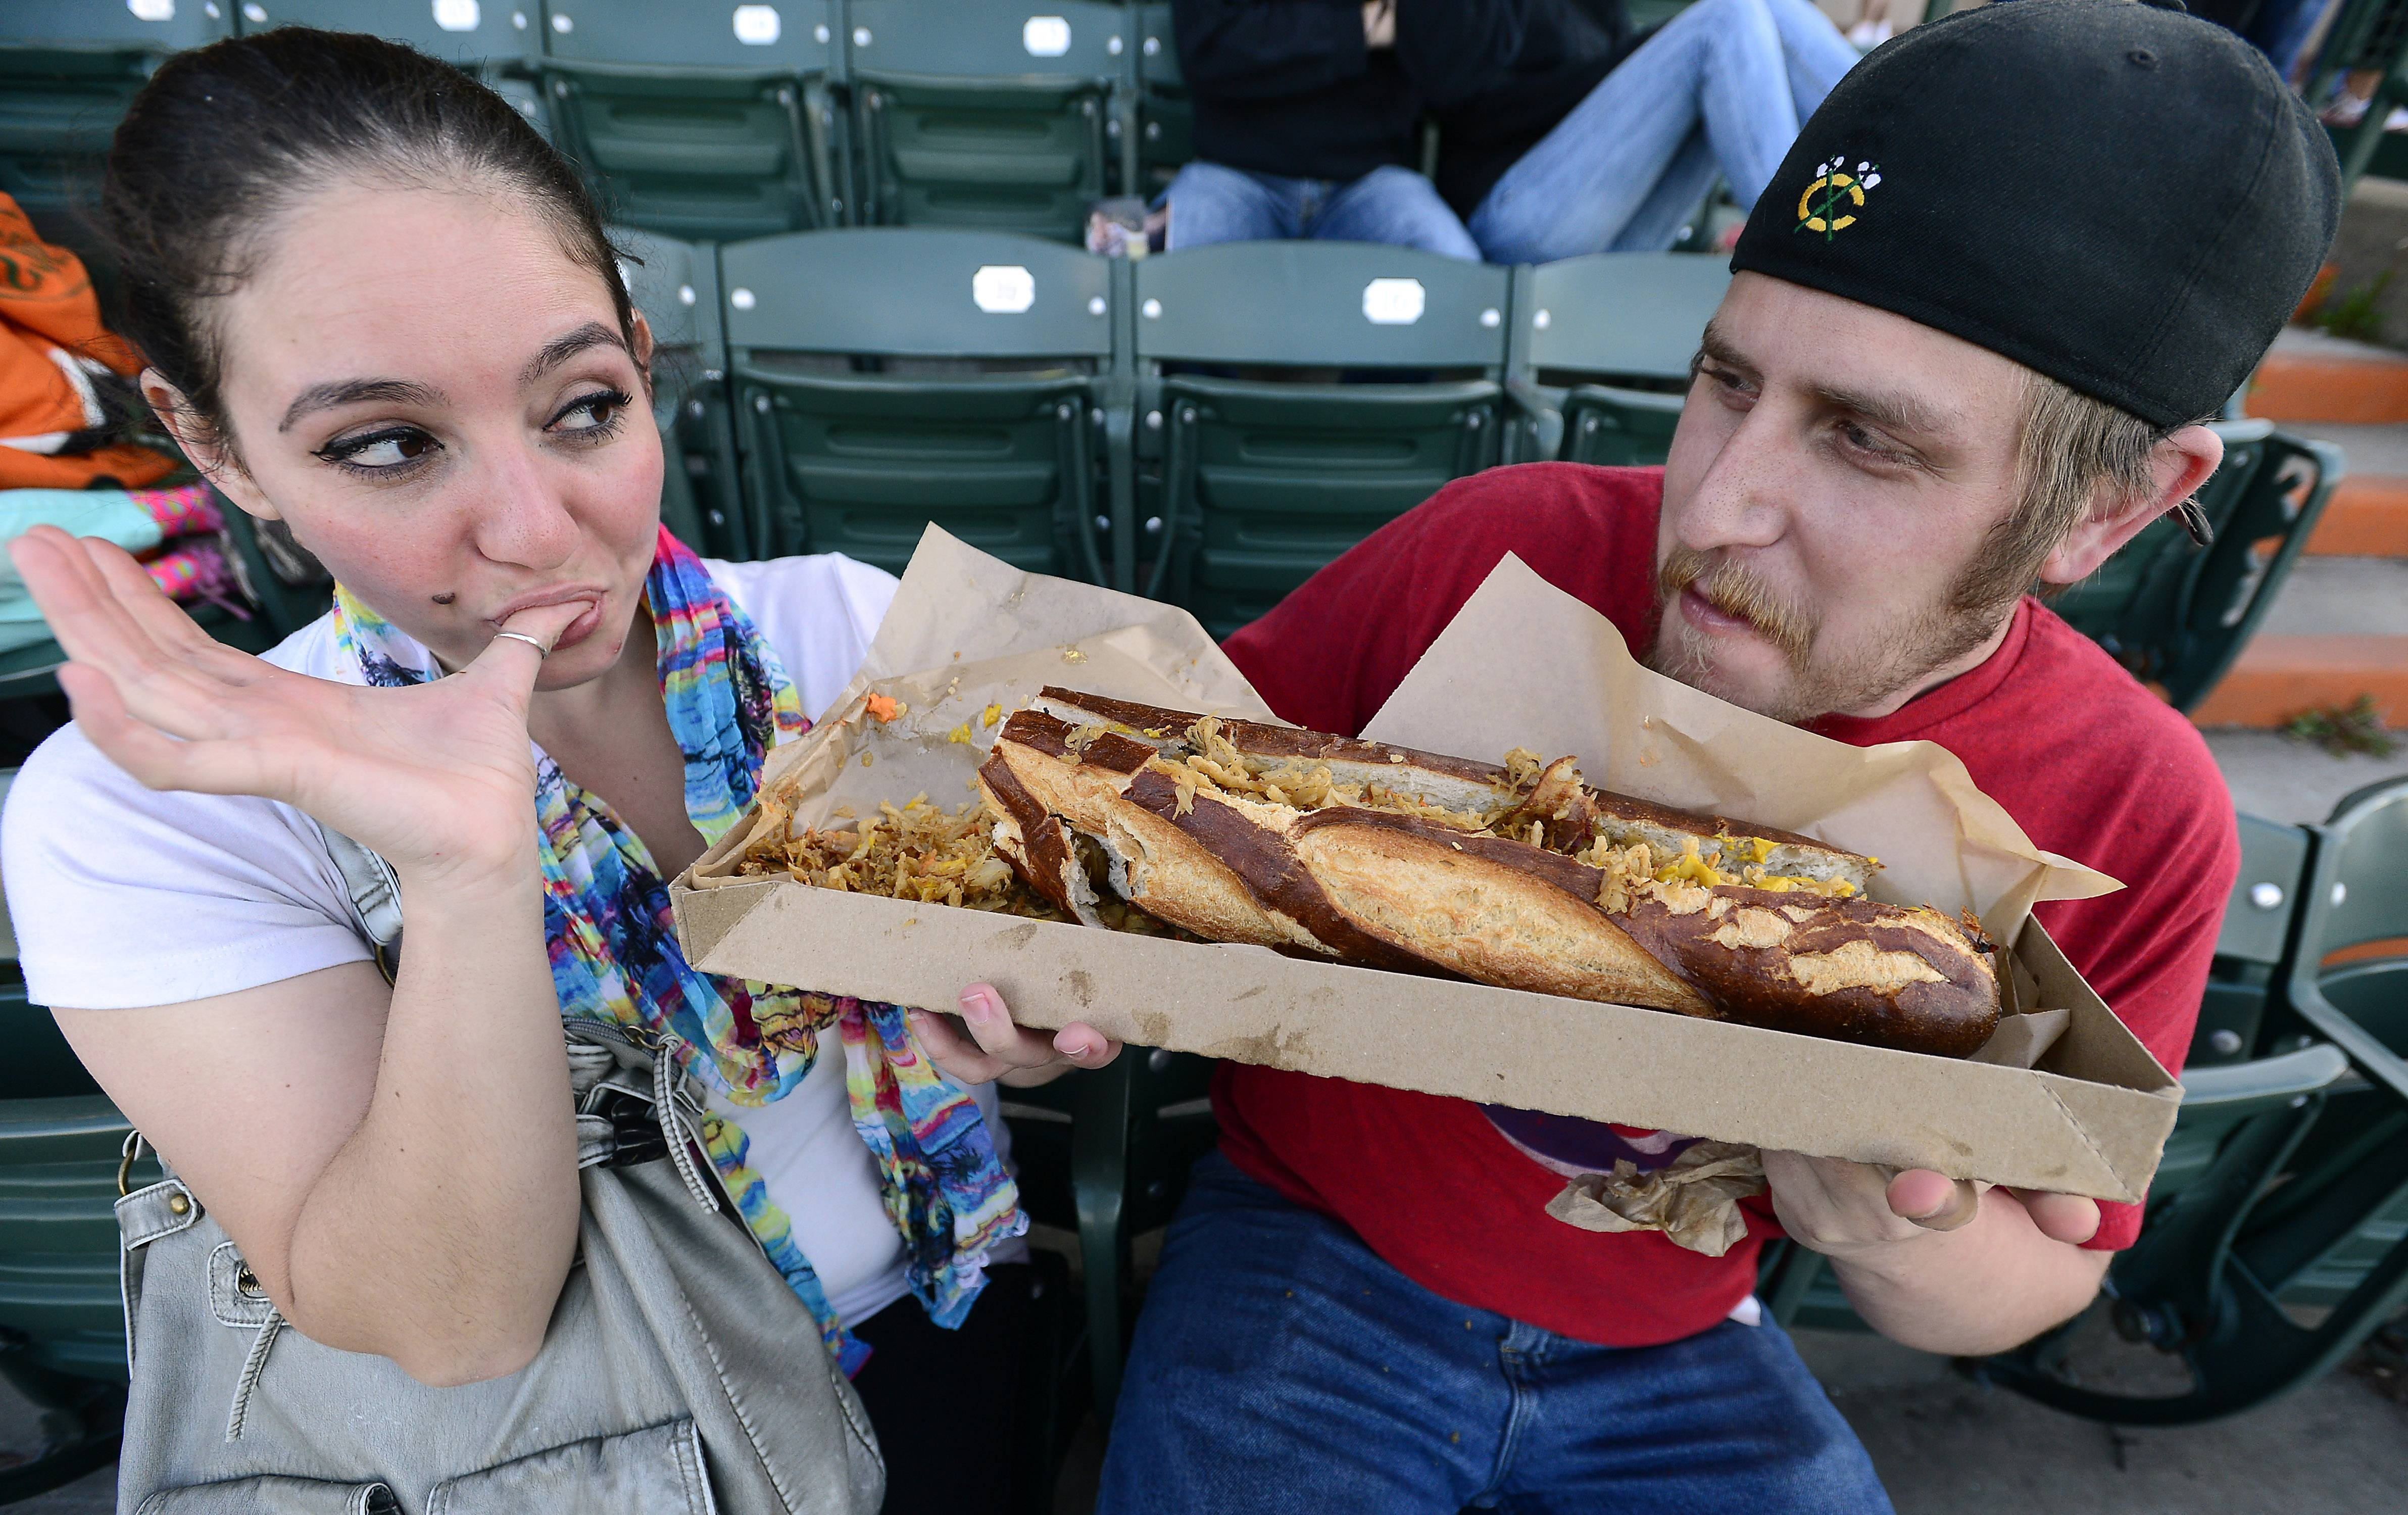 Mark Welsh/mwelsh@dailyherald.comSchaumburg Boomers fans Bianca Bacarella of Chicago and Bob Curth of Elk Grove tackle a monster sandwich at the ball park on opening night against the Florence Freedom to a packed house on Friday.